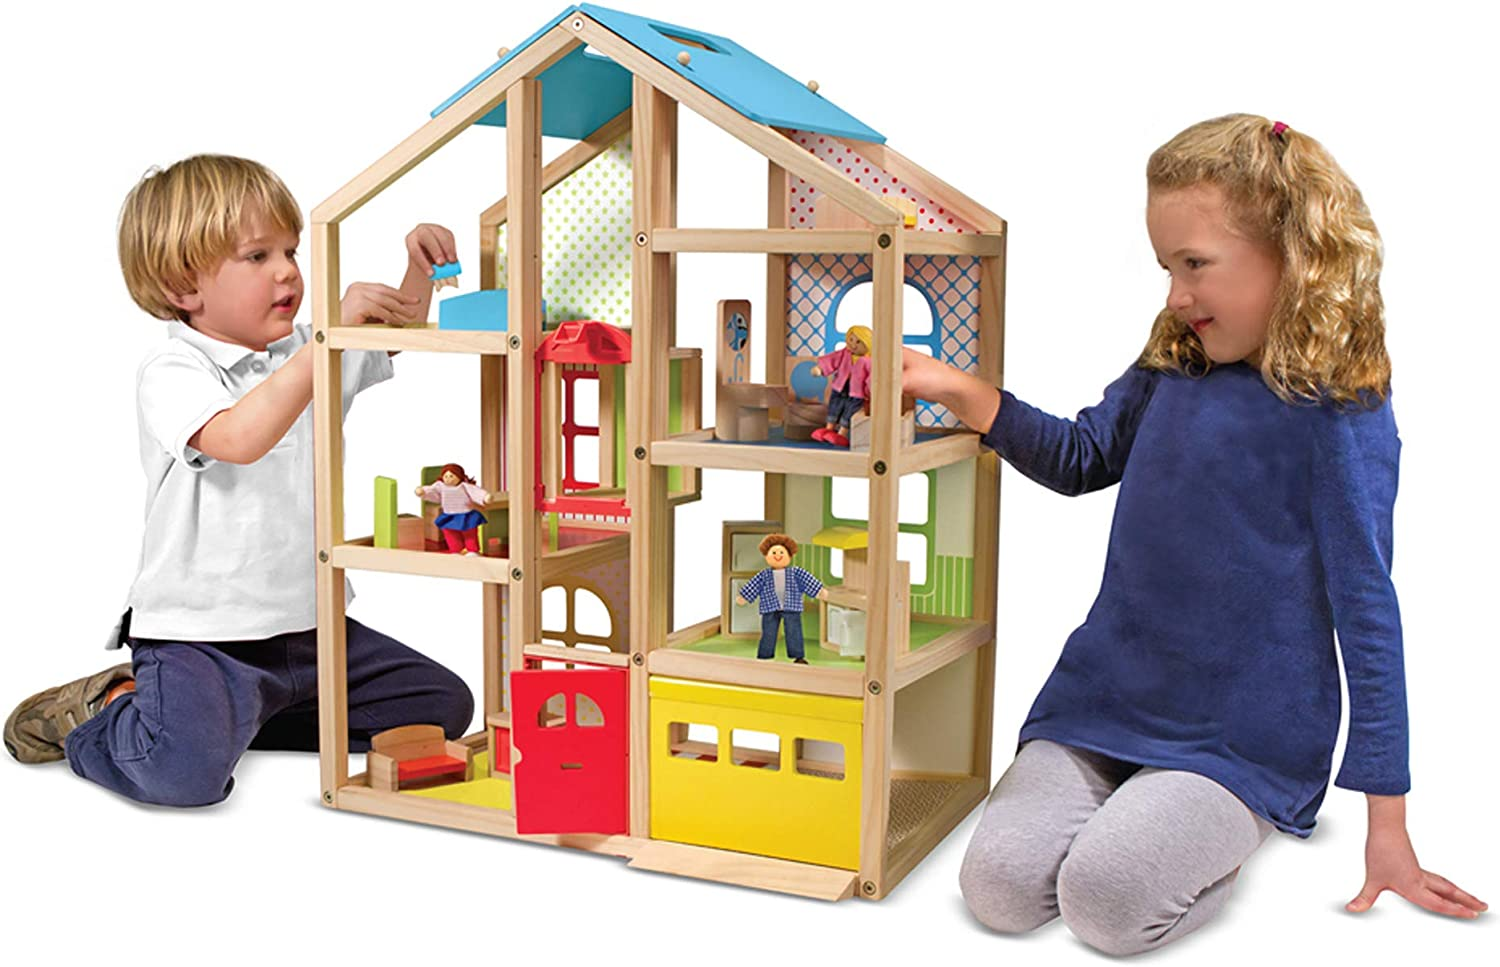 The 10 Best Dollhouse For Toddlers & Little Girls in 2020 1